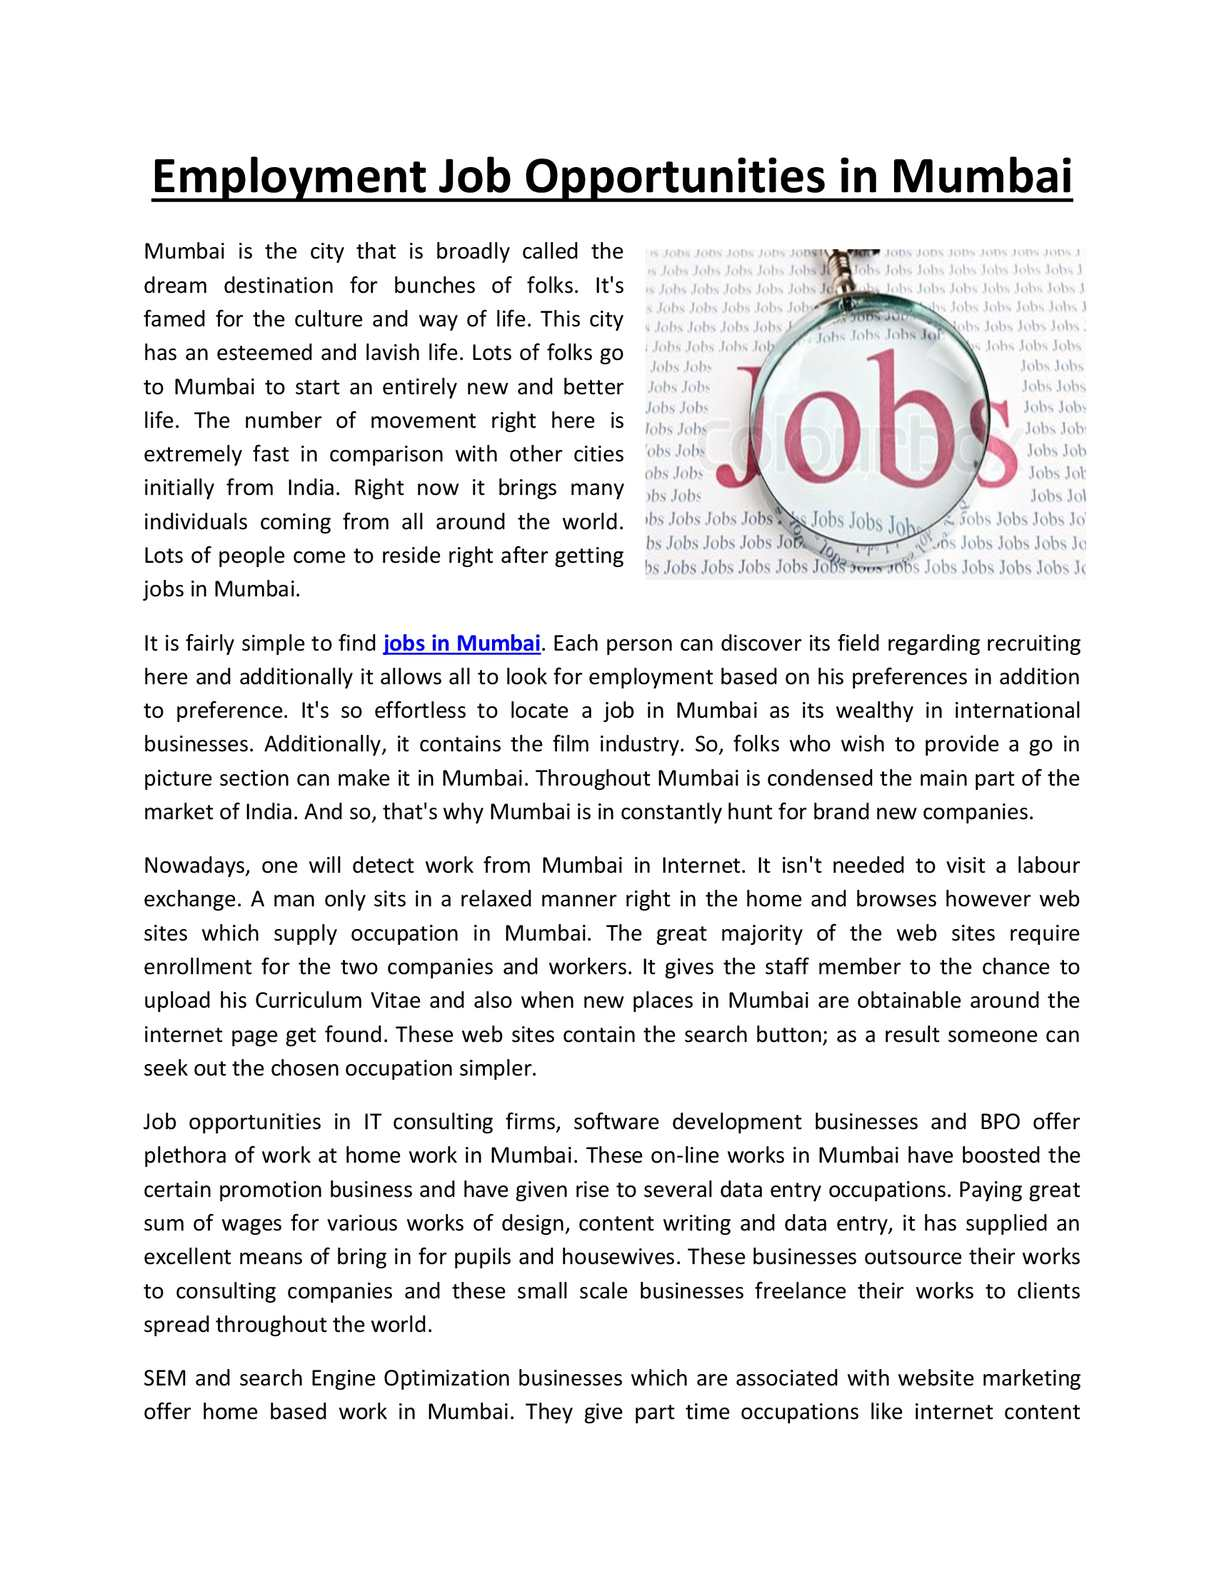 Calaméo - Employment Job Opportunities in Mumbai